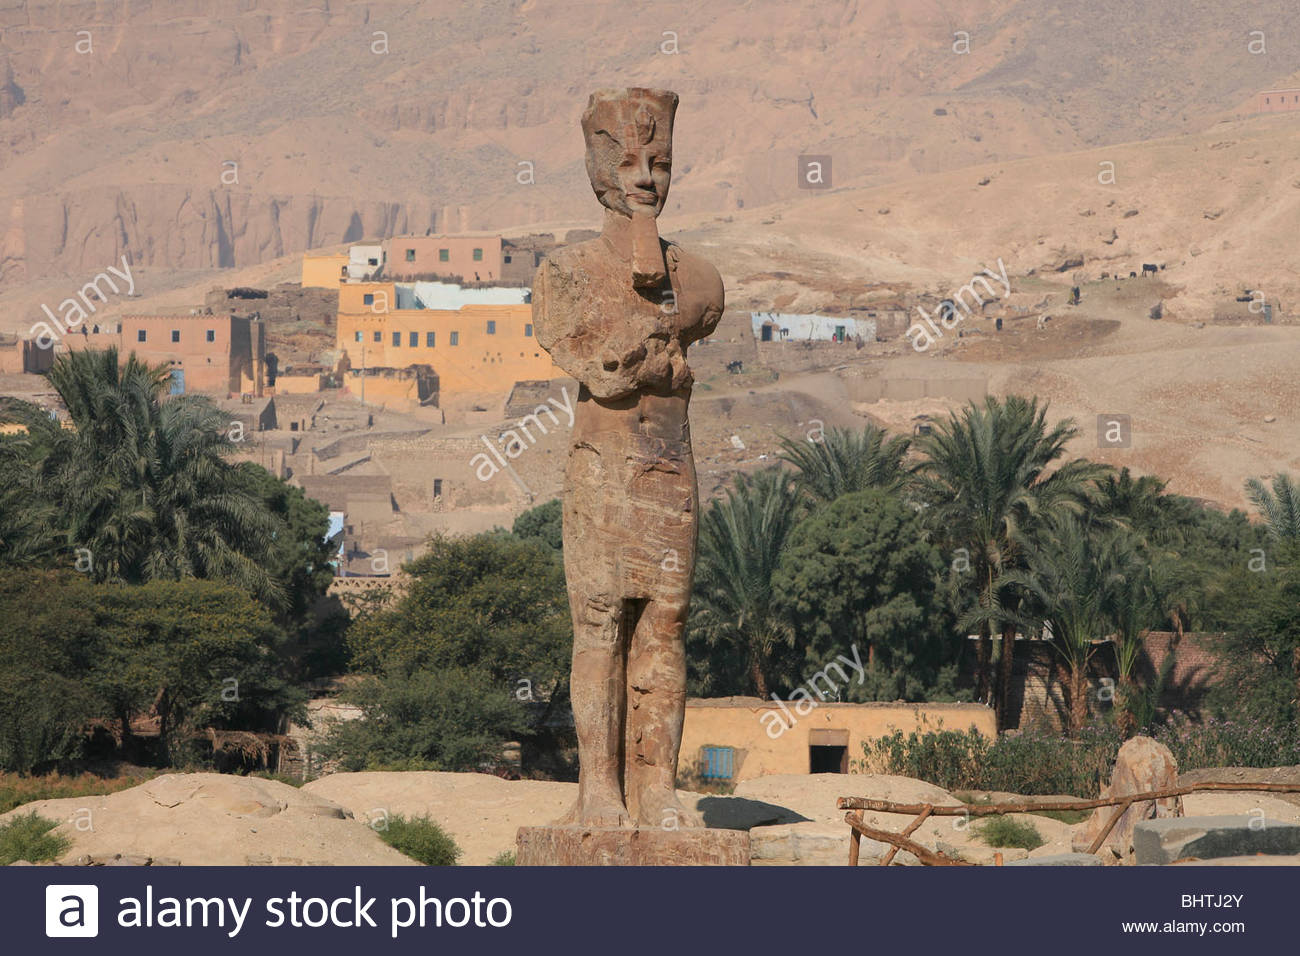 Palace of Amenhotep III Luxor, Colossal quartzite statue of Amenhotep III at his Mortuary Temple ...